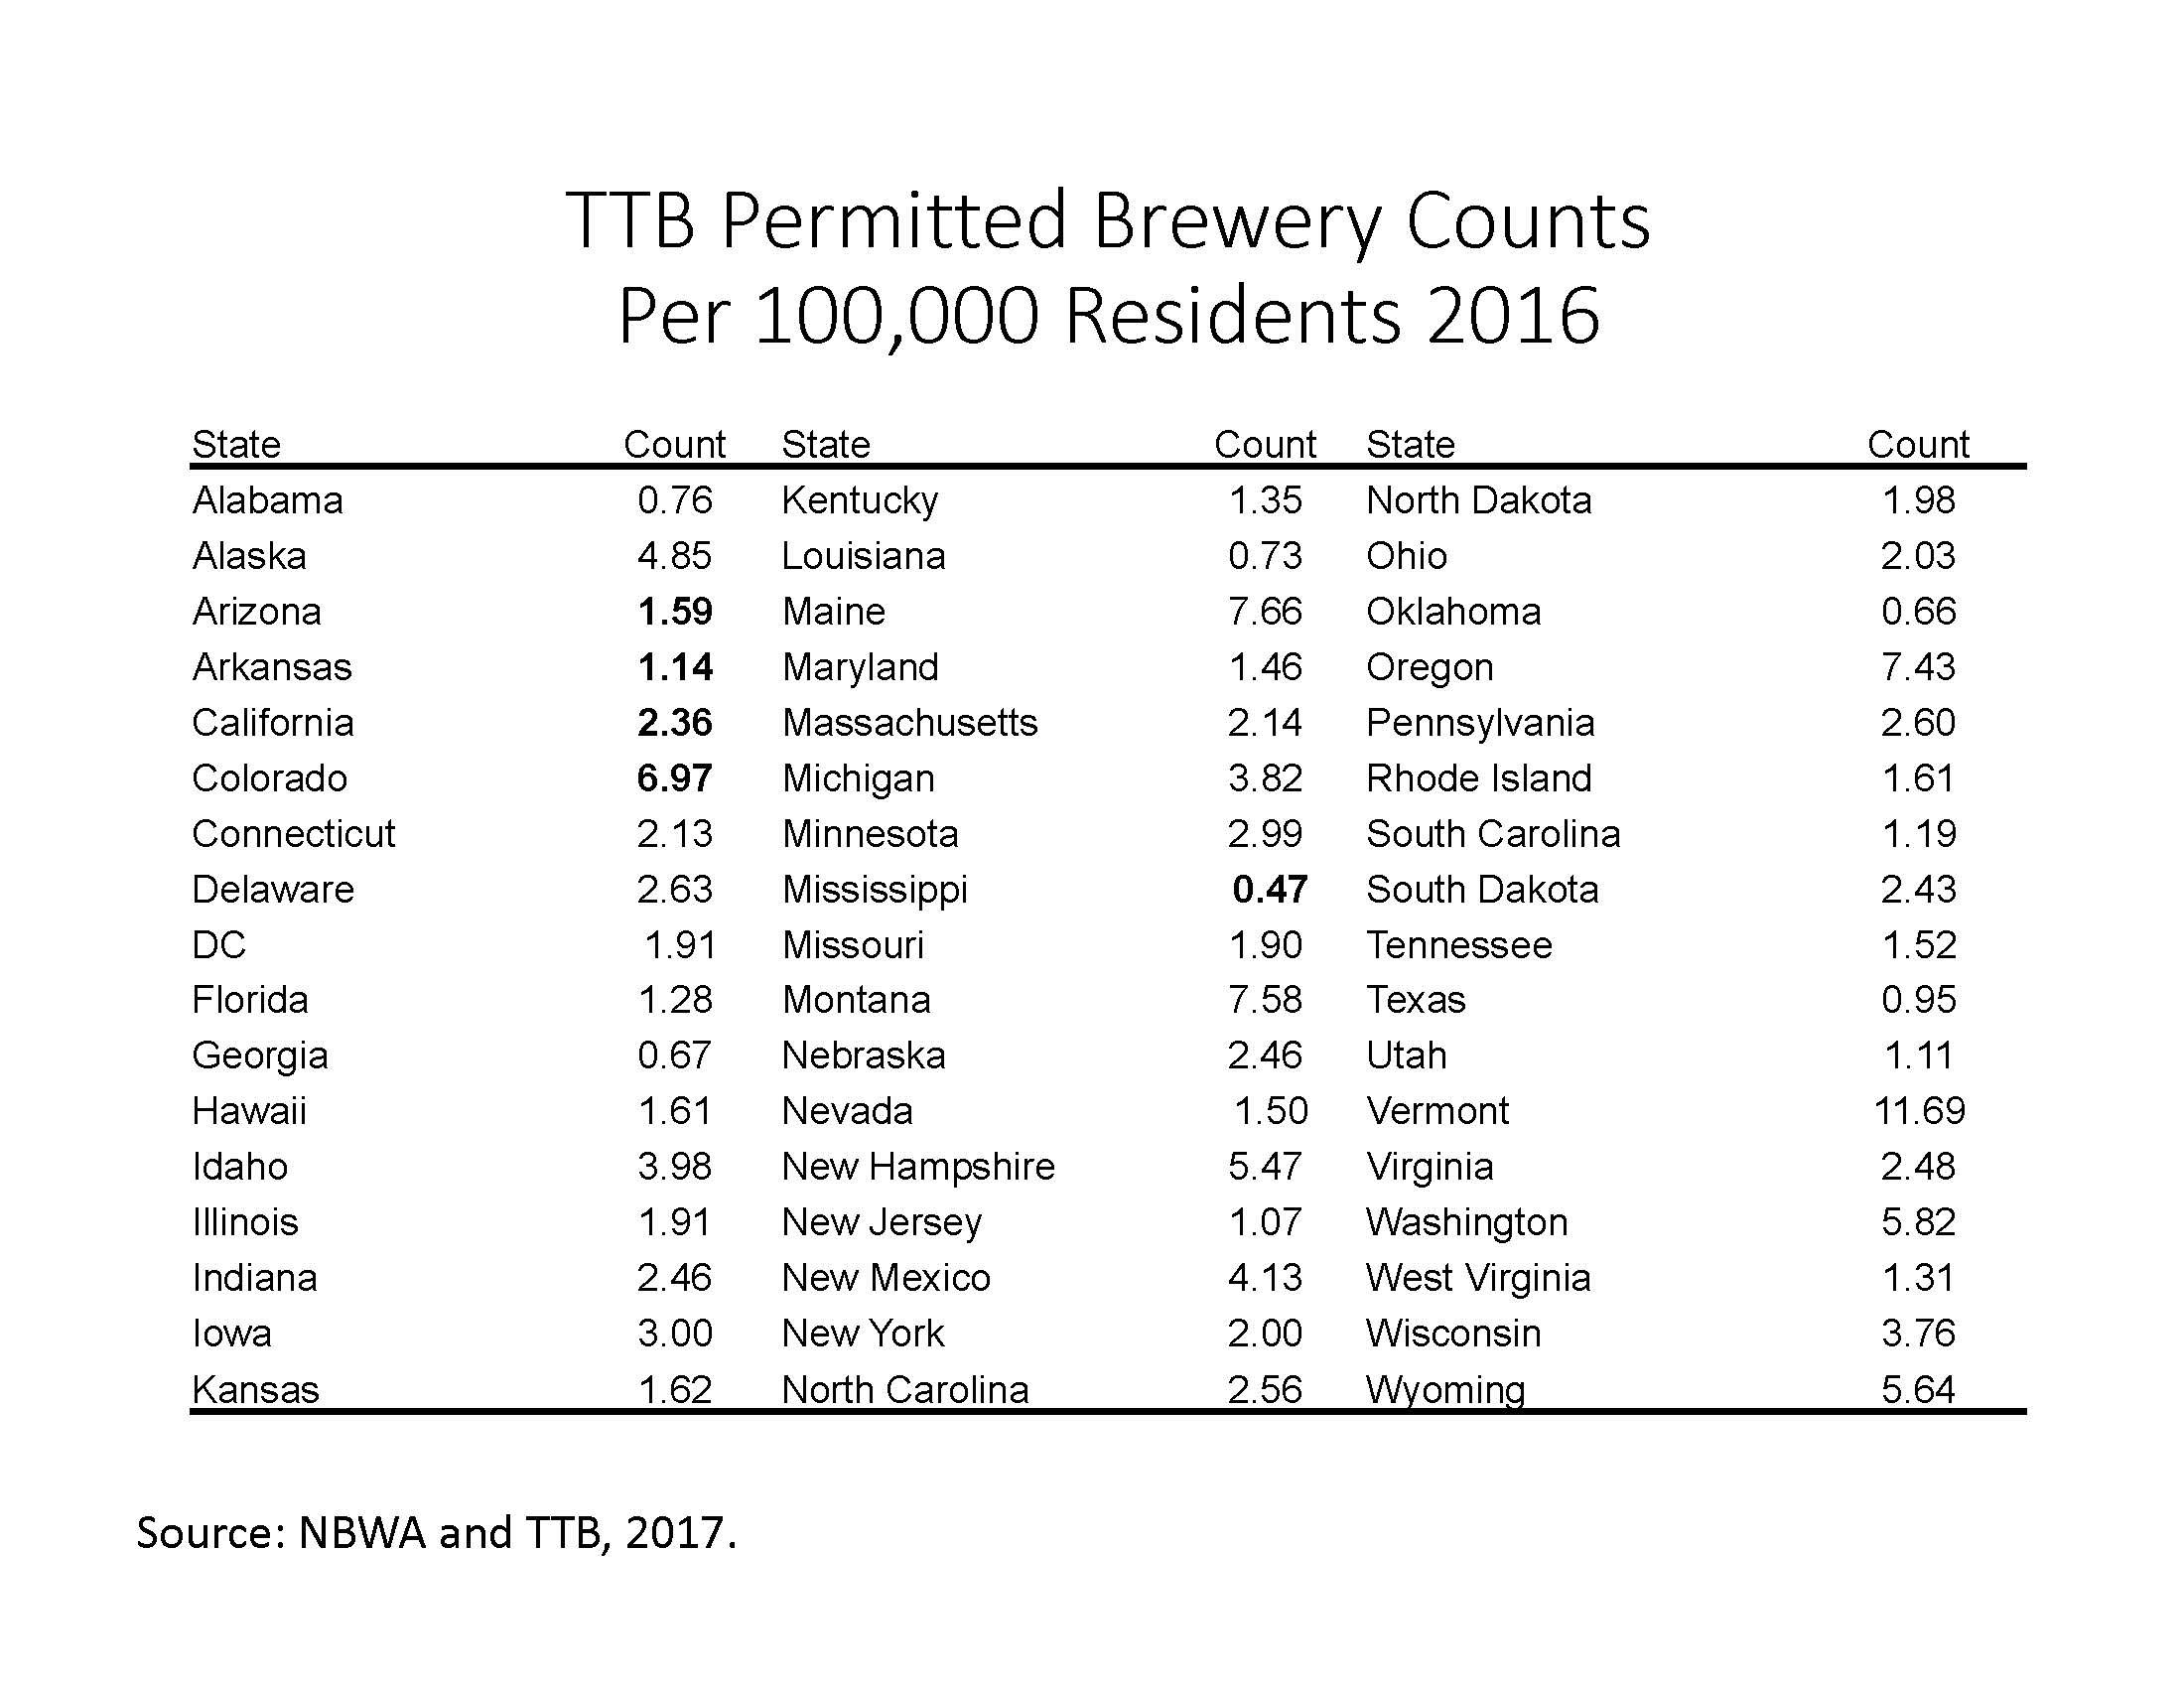 TTB Permitted Brewery Counts Per 100,000 Residents 2016